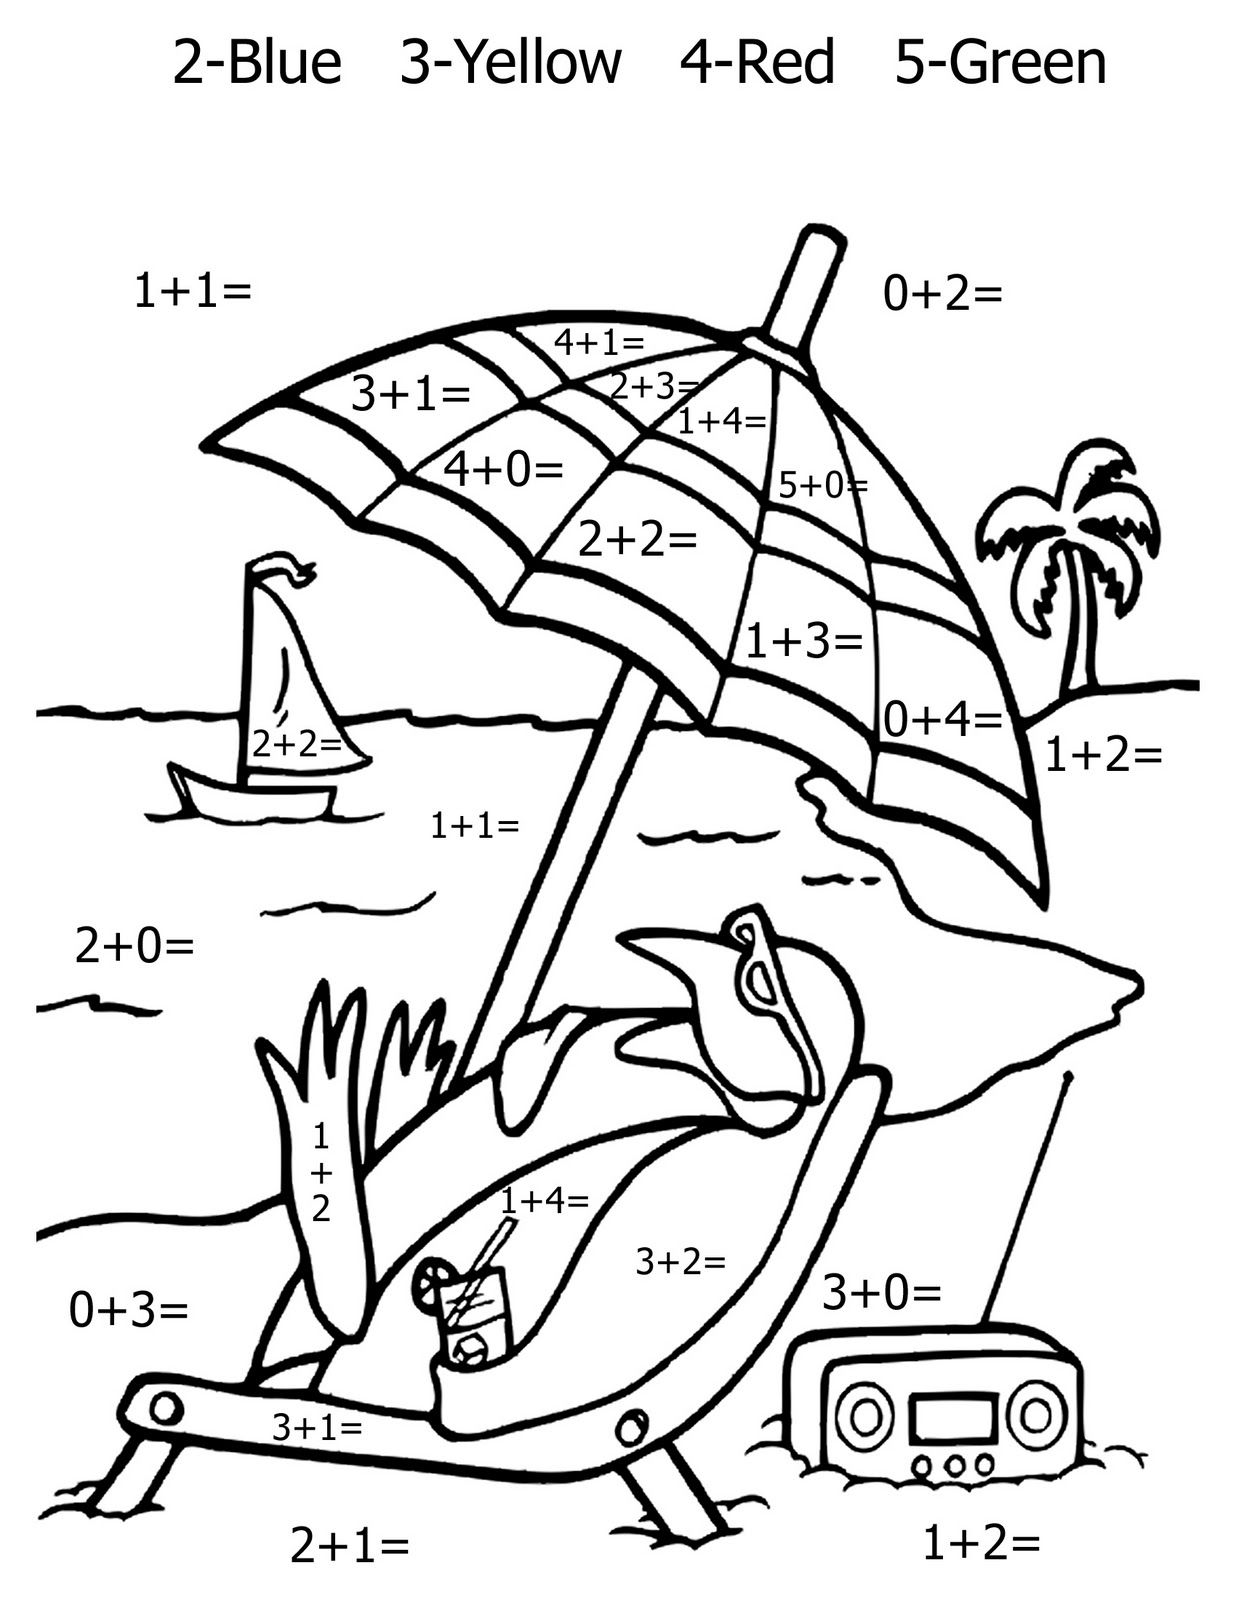 2nd grade coloring sheet - Explore Kindergarten Coloring Pages And More